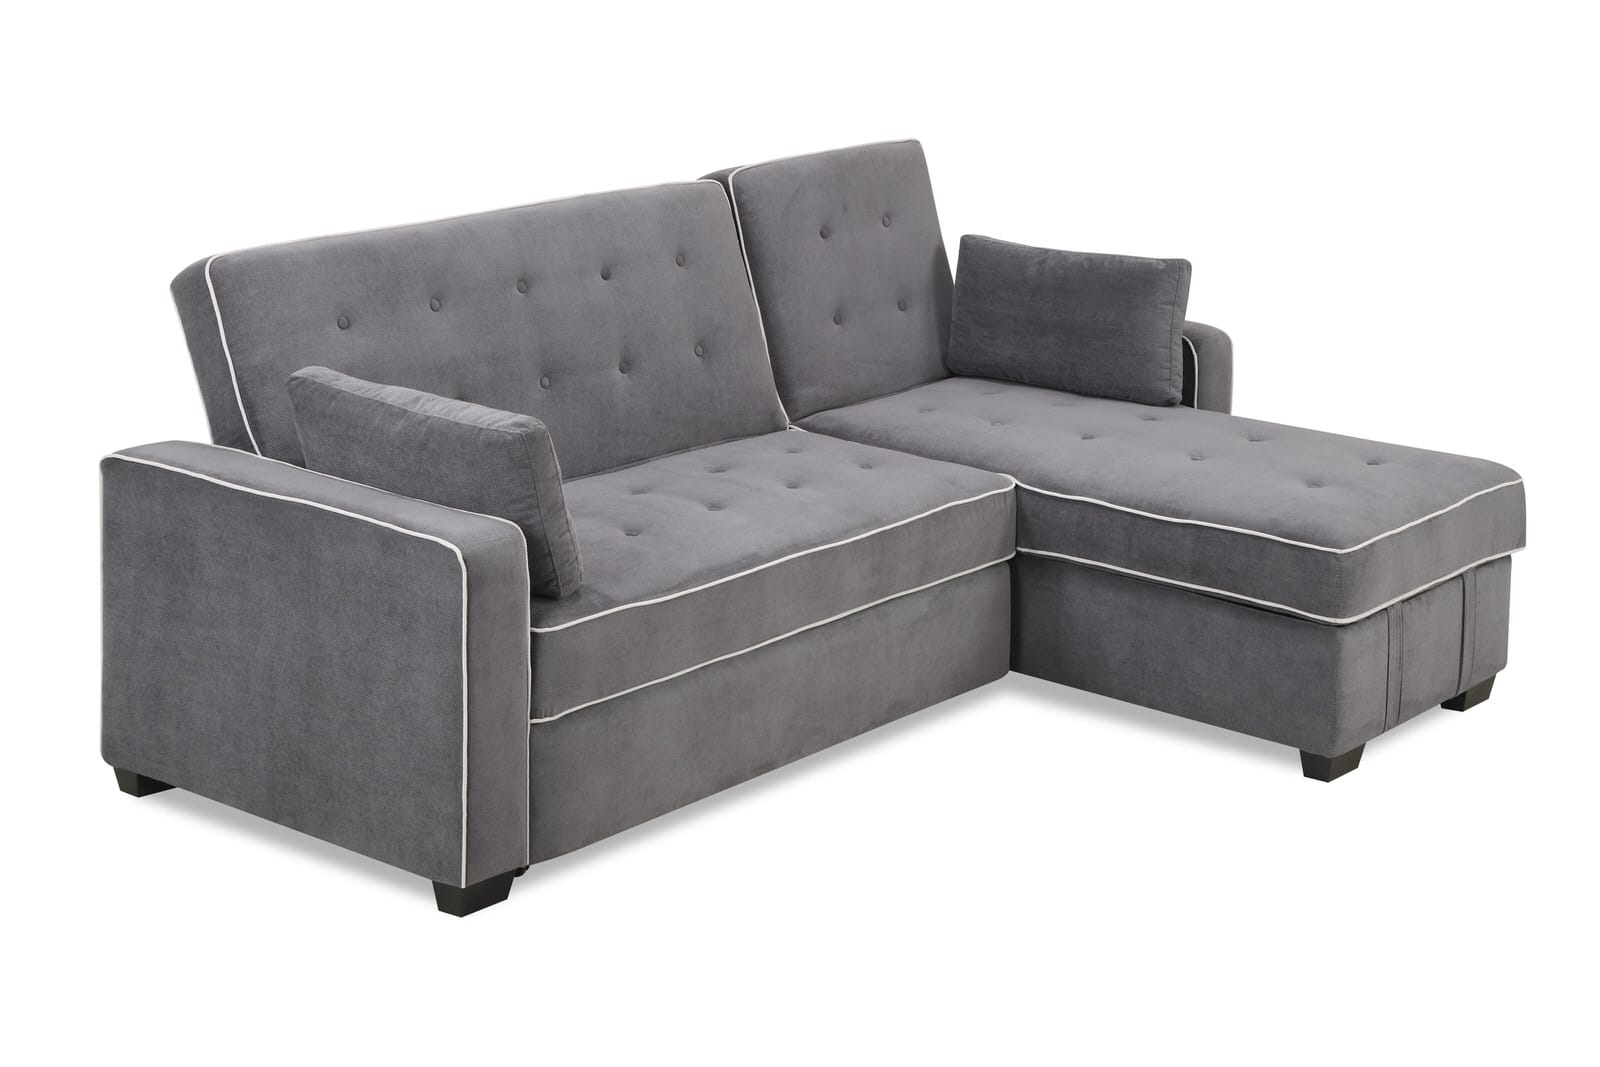 augustine king size sofa bed moon grey by serta lifestyle. Black Bedroom Furniture Sets. Home Design Ideas